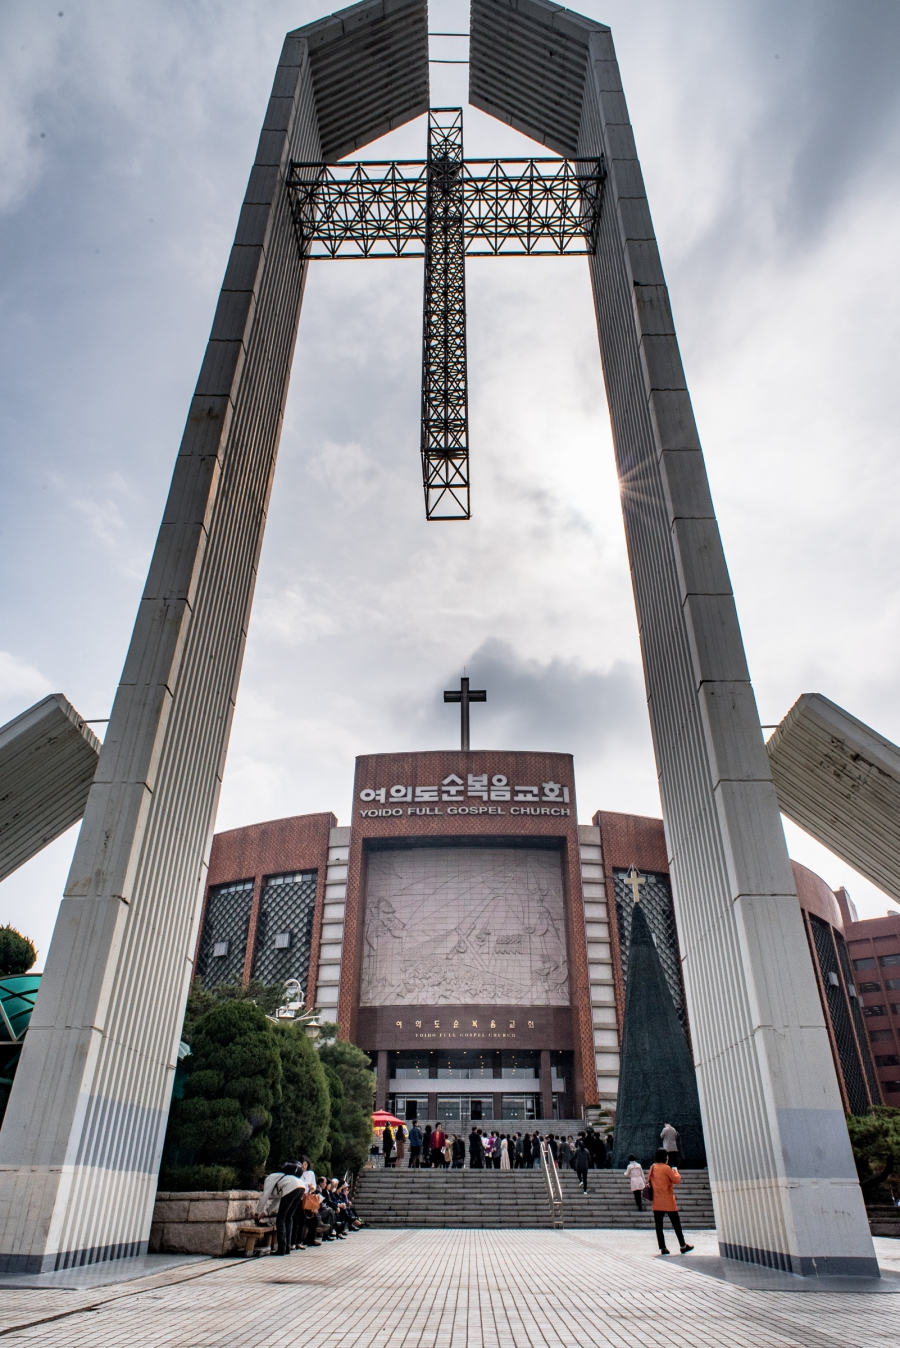 The congregation at Full Gospel Church on Yoido Island grew along with the city of Seoul. The capital city and its outskirts is now home to more than 20 million people.